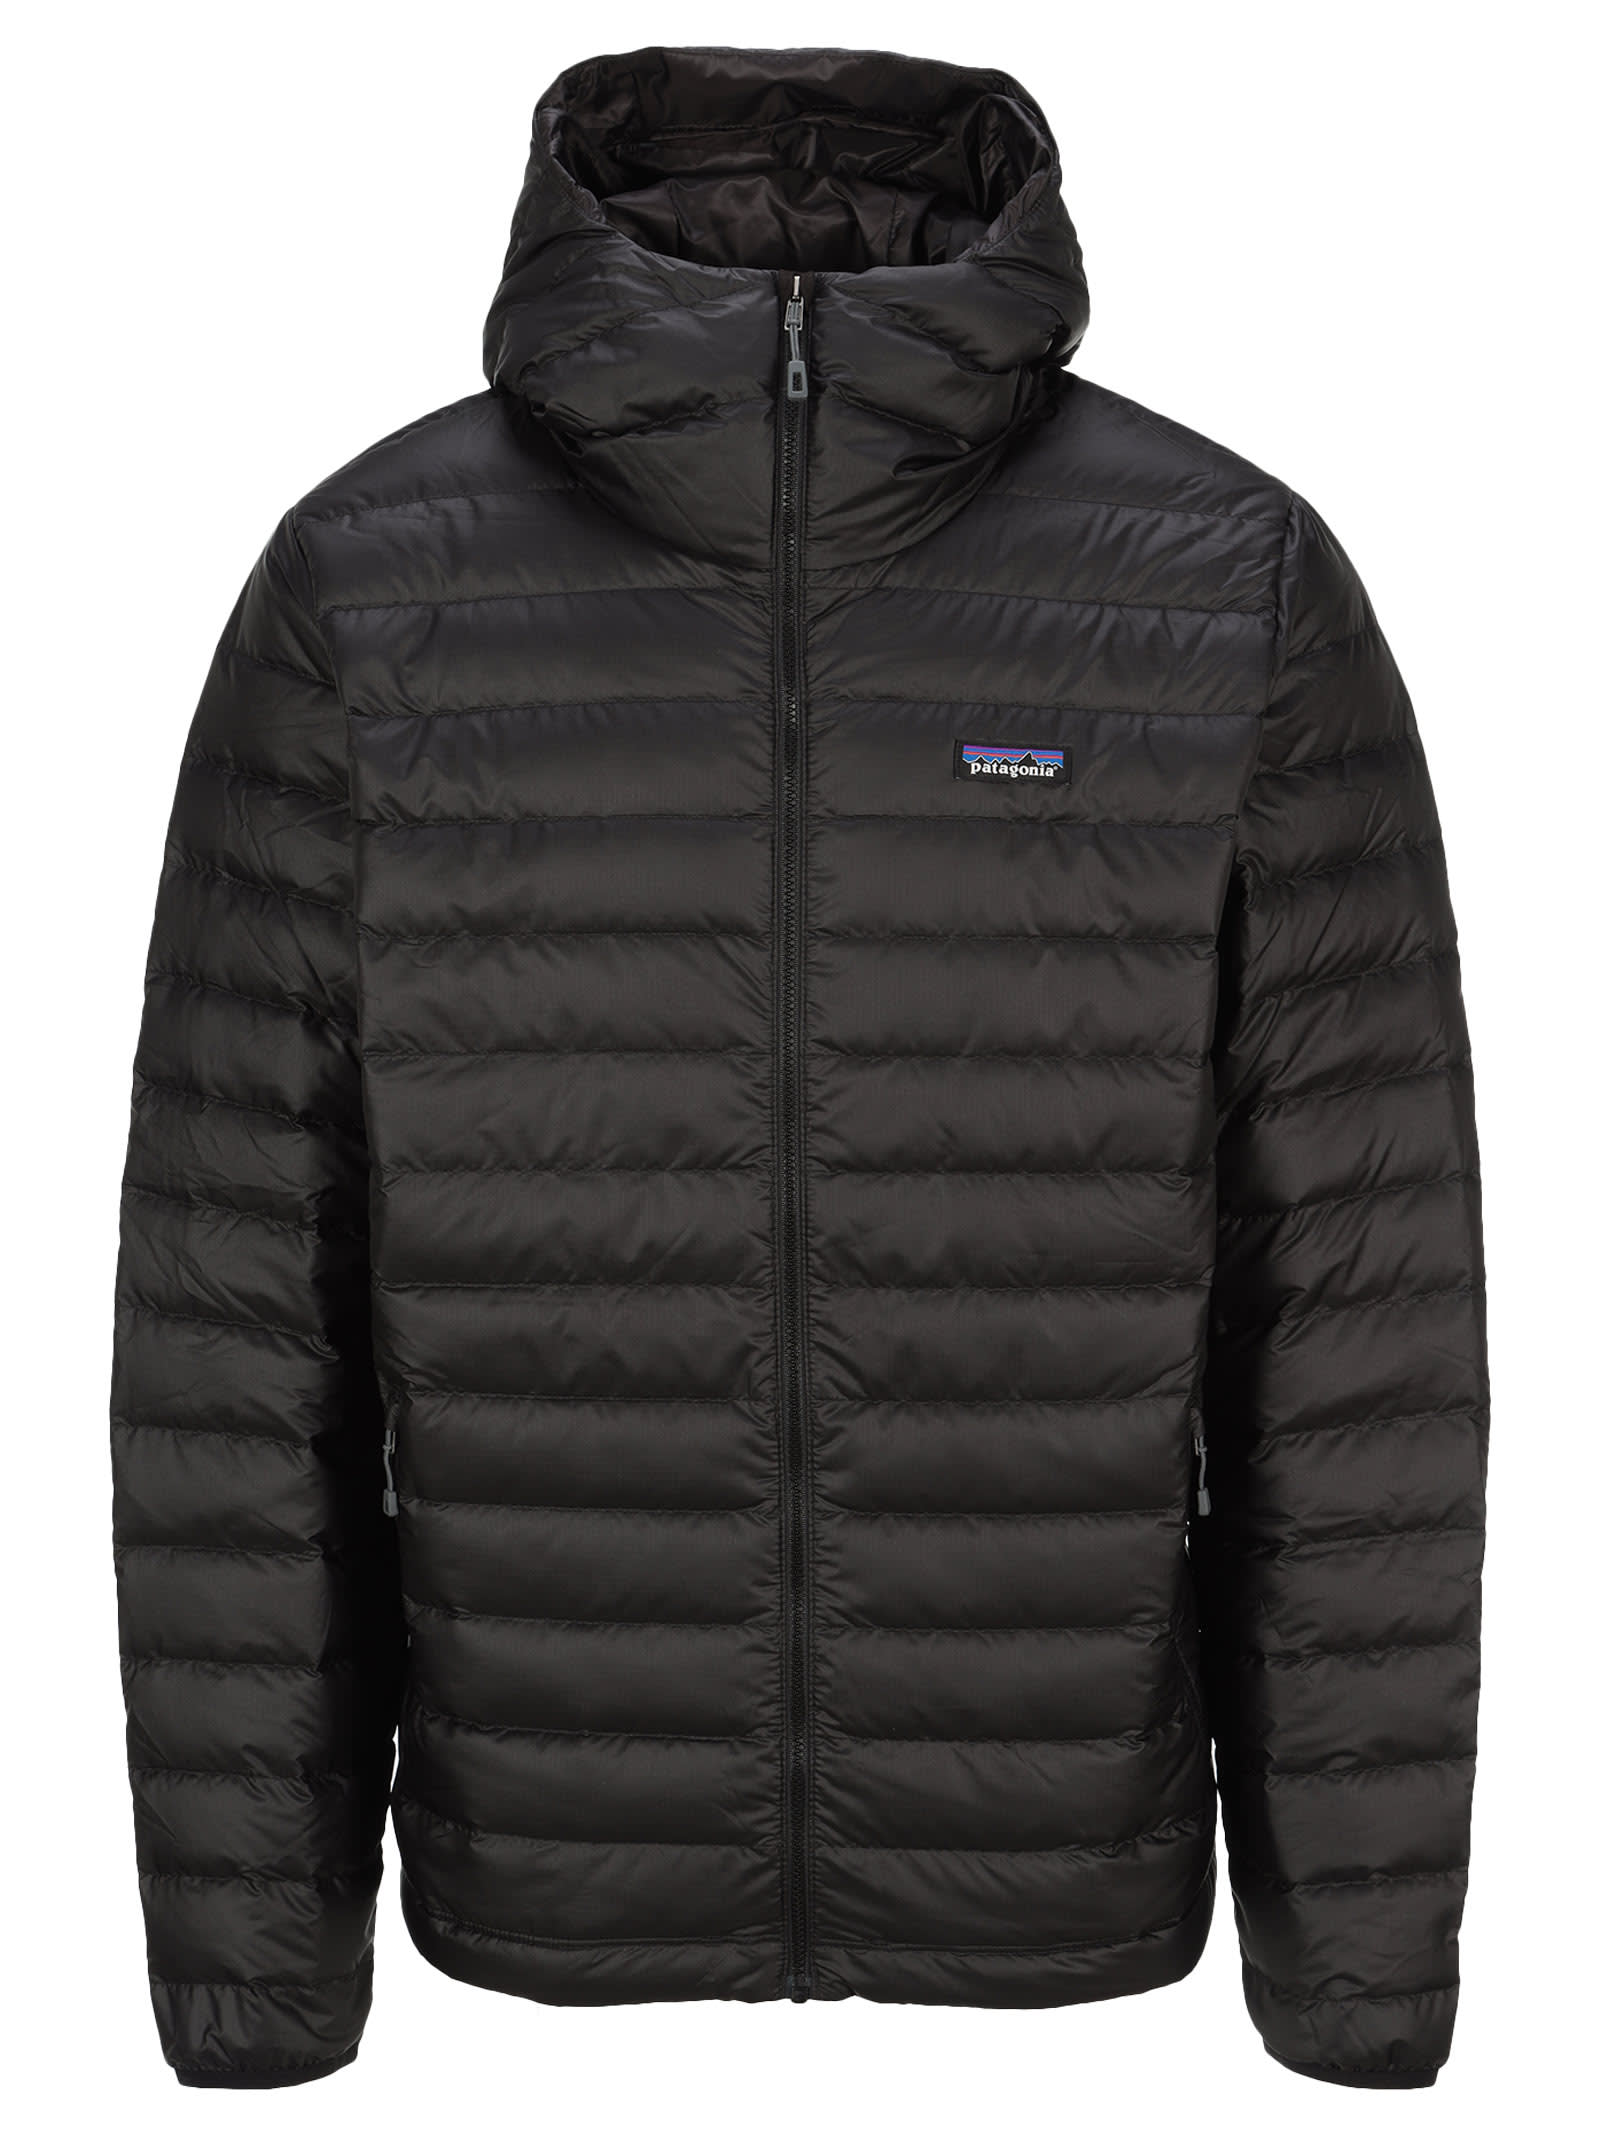 Black Down Sweater Hoody By Patagonia. Featuring: - Hood; - Front Zip Fastening; - Logo Patch At The Chest; - Side Zip Pockets; - Long Sleeves; - Straight Hem. Composition: 100% RECYCLED POLYESTER - PADDING:, 90% DOWN, 10% FEATHER